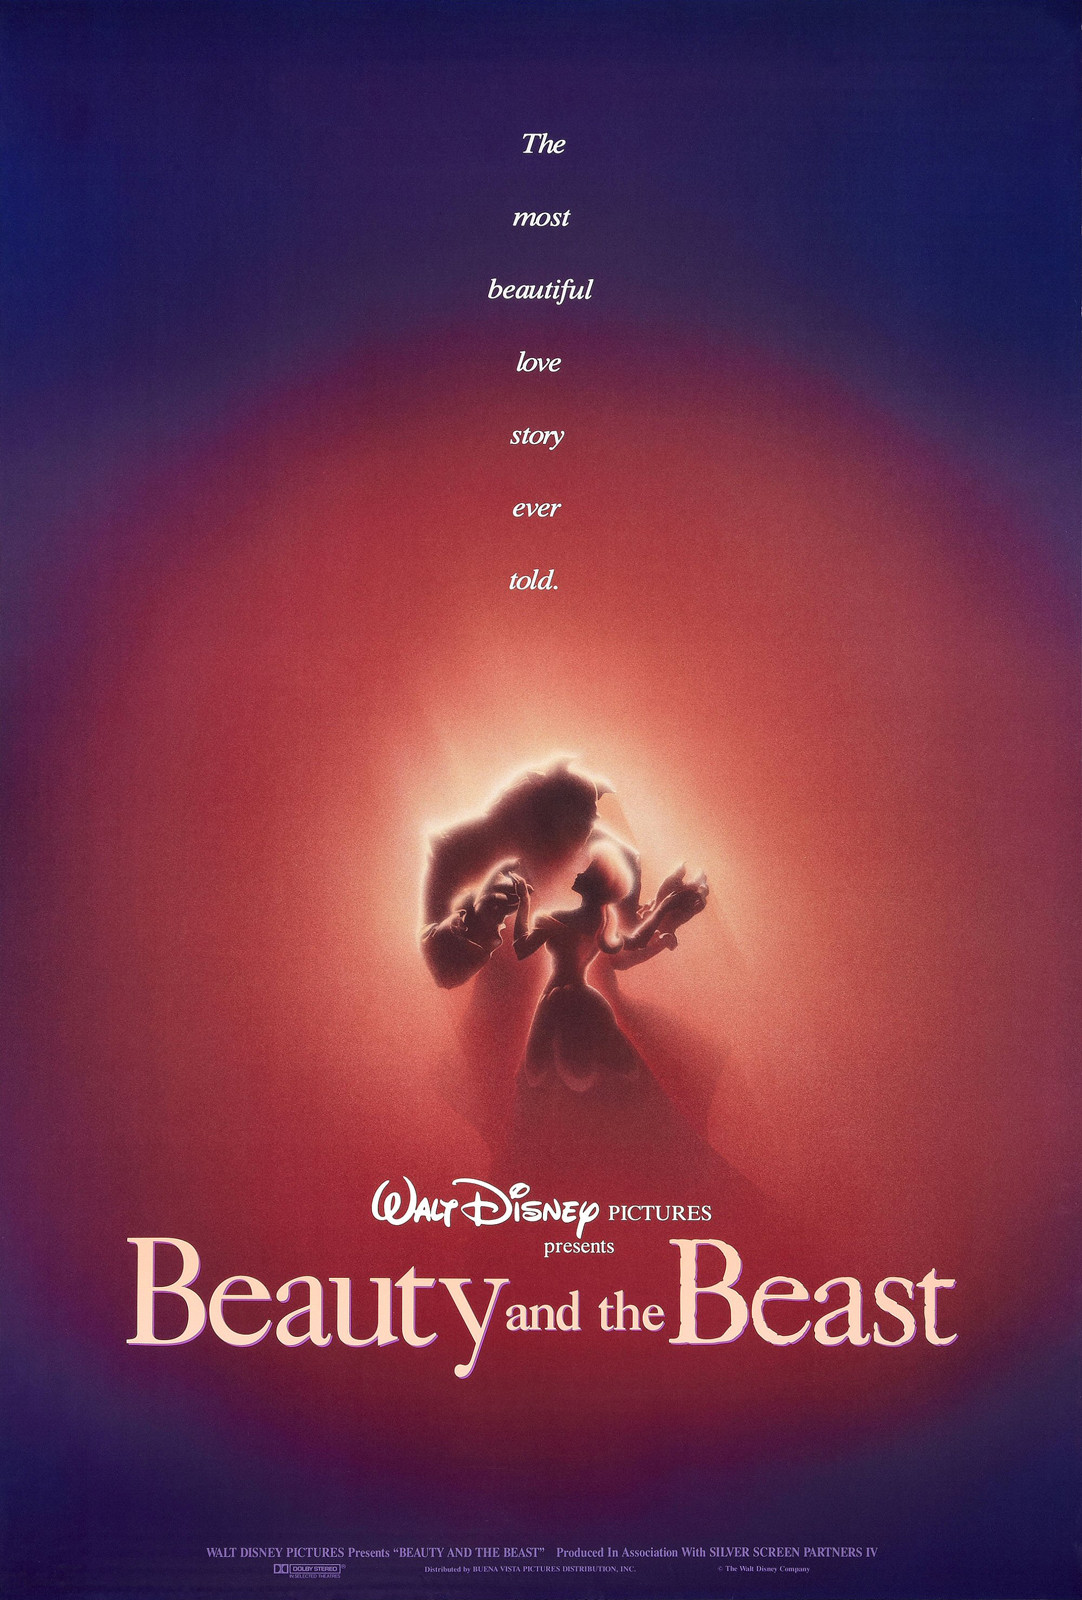 brilliantly designed posters of the Disney Renaissance Beauty and the Beast